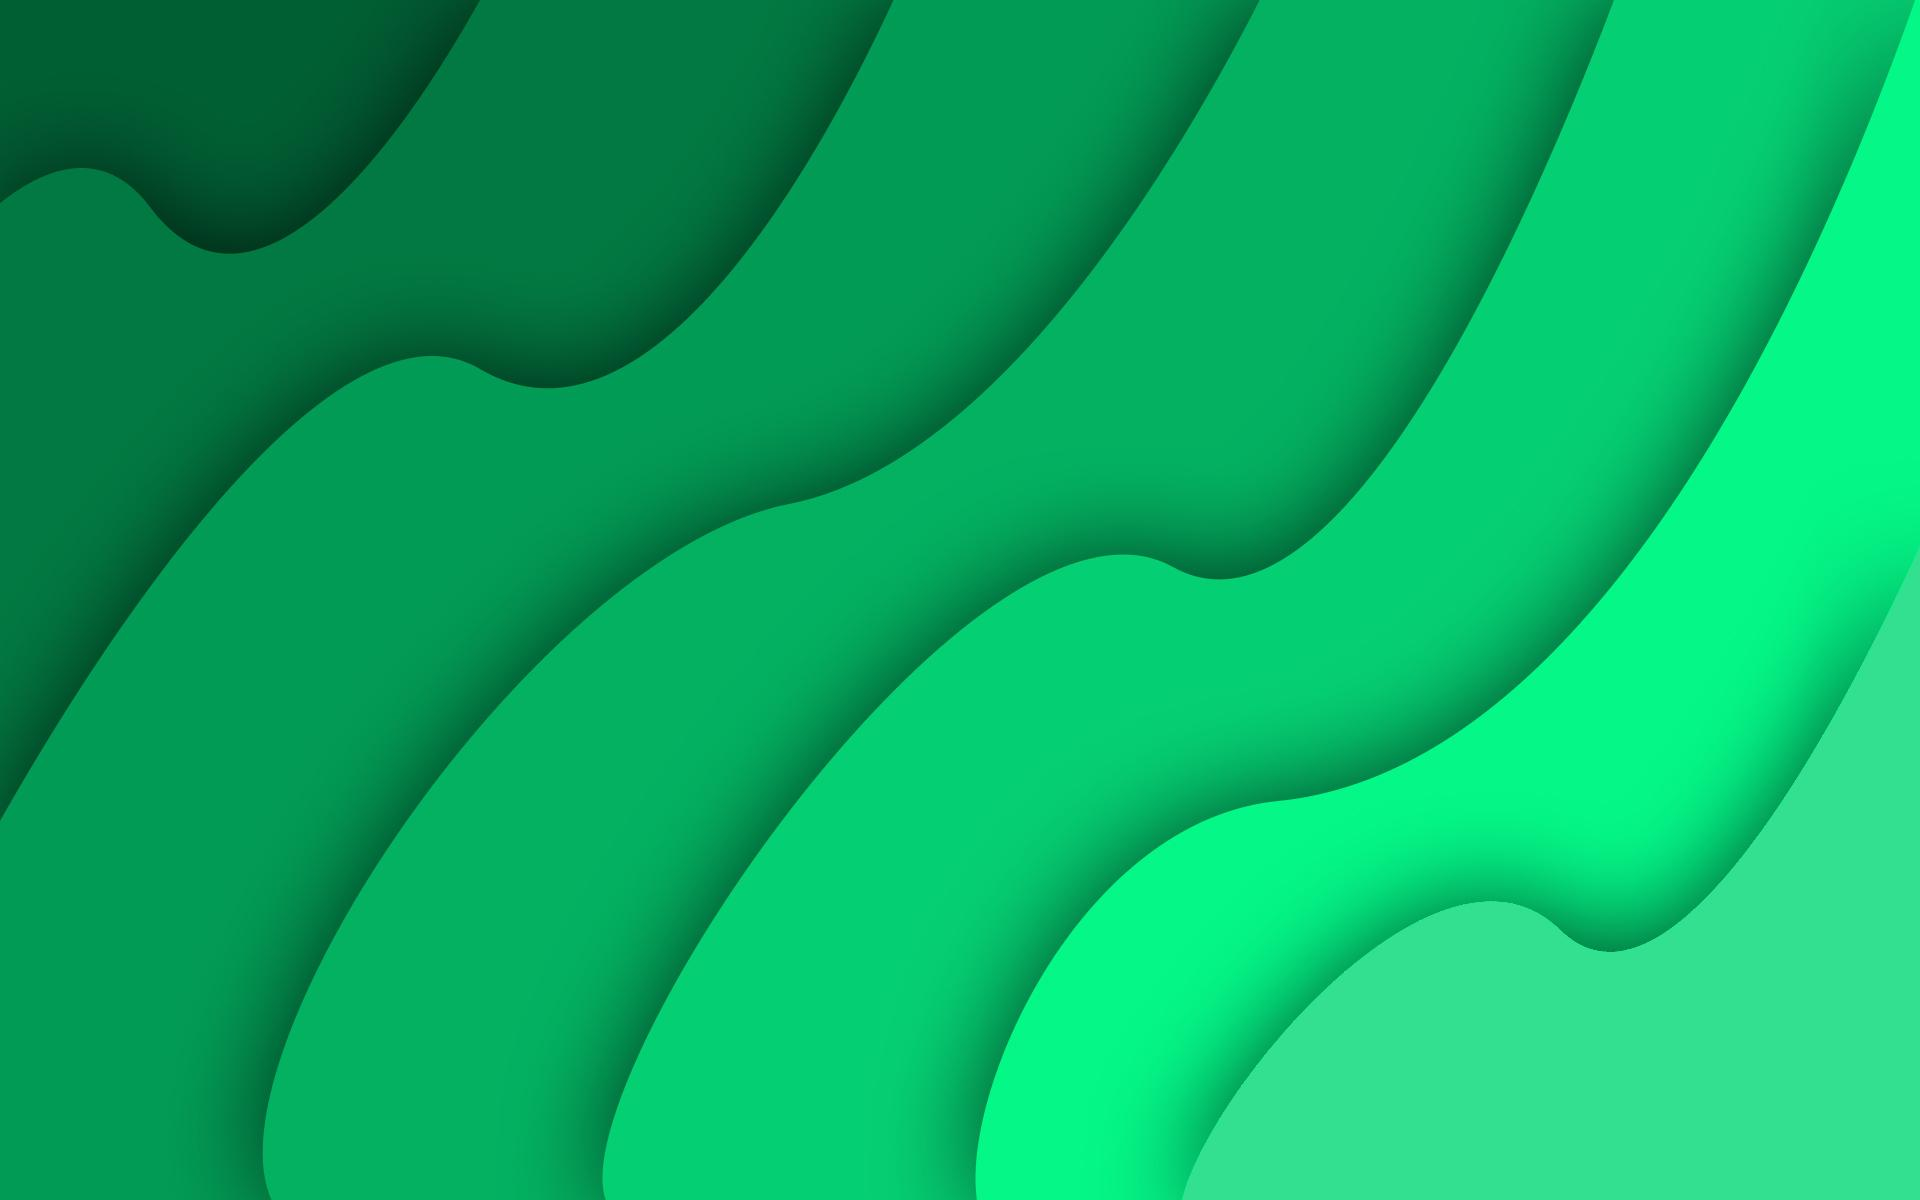 Hd Weed Wallpapers For Android Download Green Shade Wallpaper Gallery